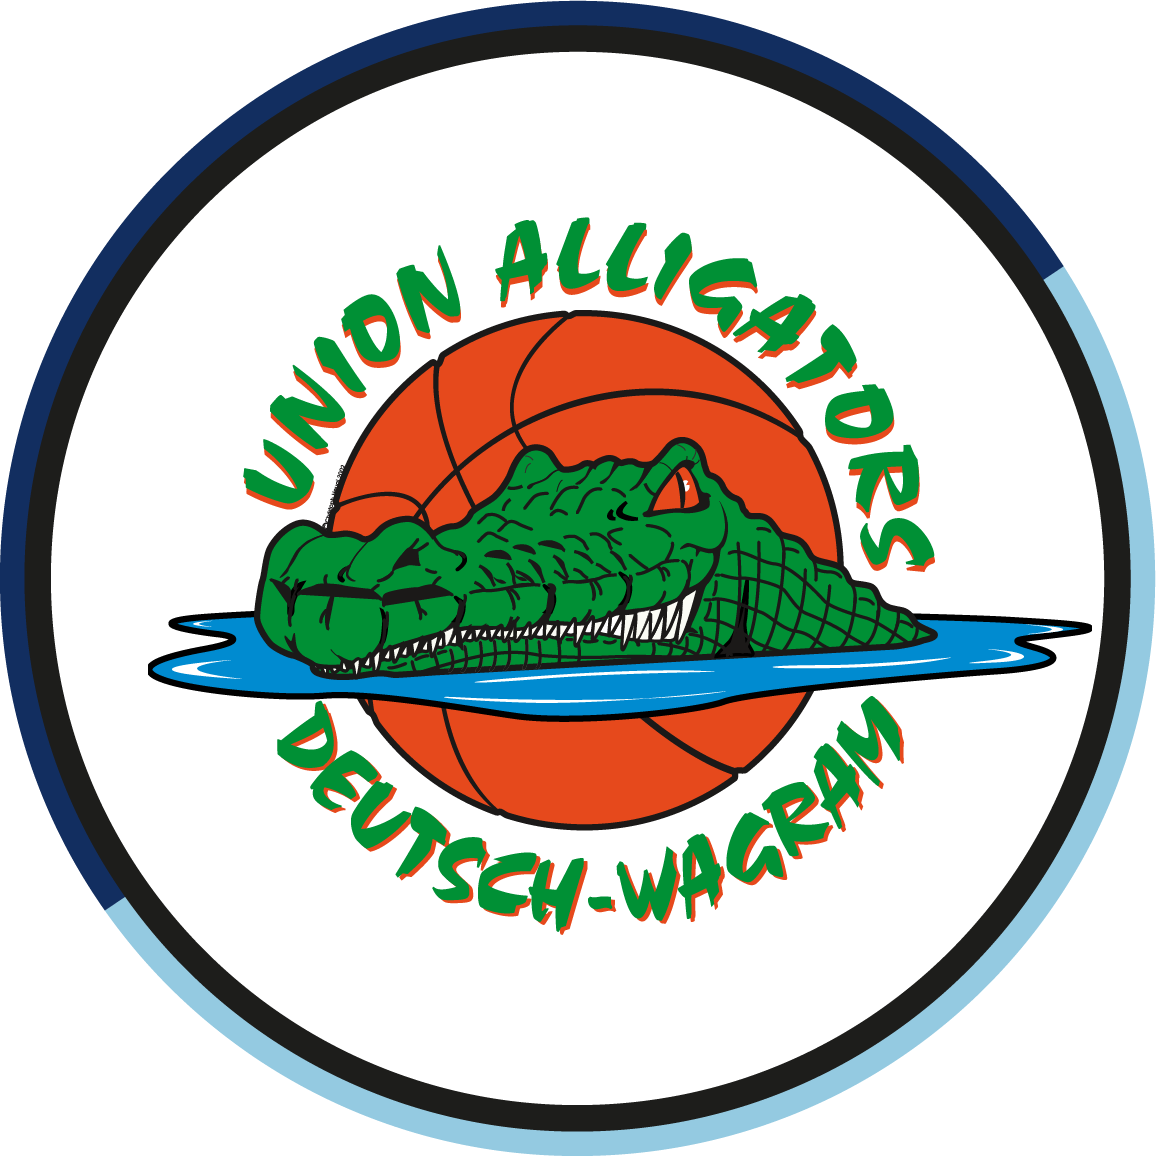 Union Alligators Deutsch Wagram